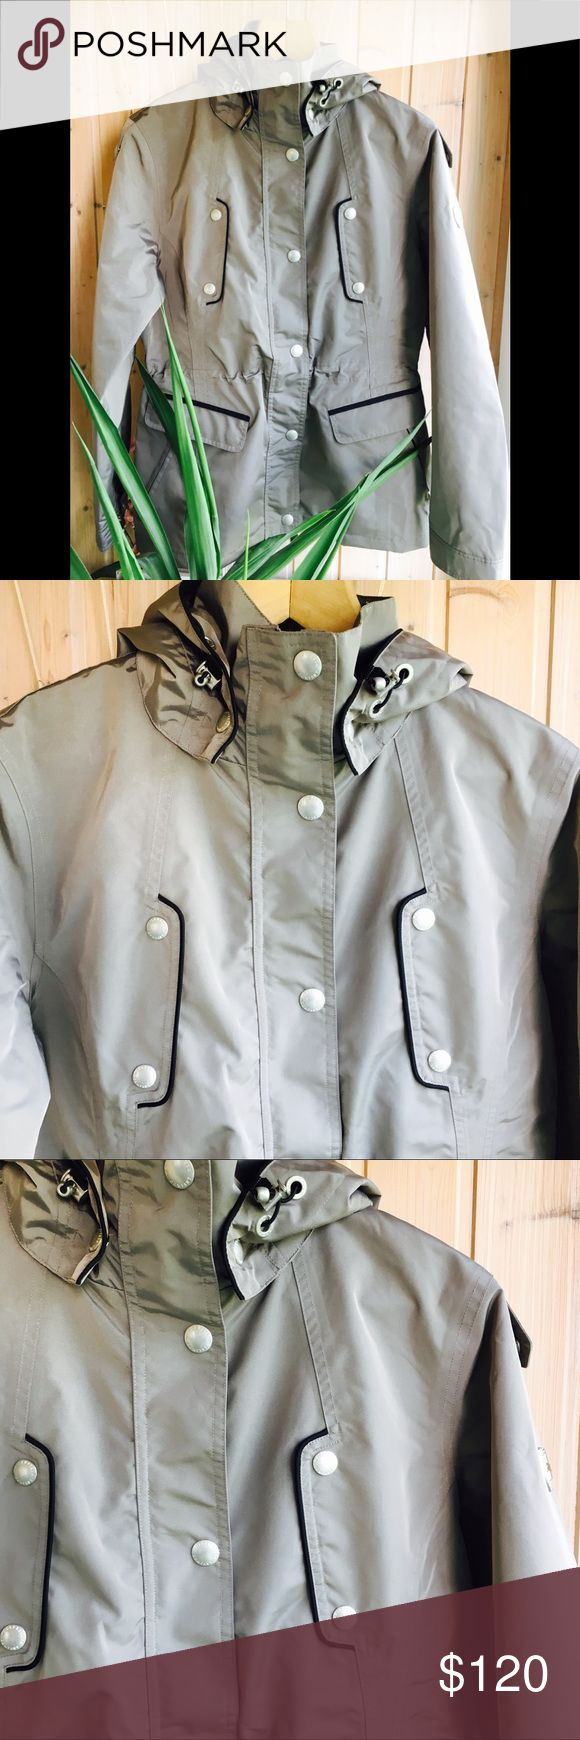 Wellensteyn Fall Women Jacket Size 8-10 Awesome Like New Wellensteyn Women's Jacket. The Jacket will be perfect for Size 8 -10. Please see pictures for more details. Jackets & Coats Utility Jackets